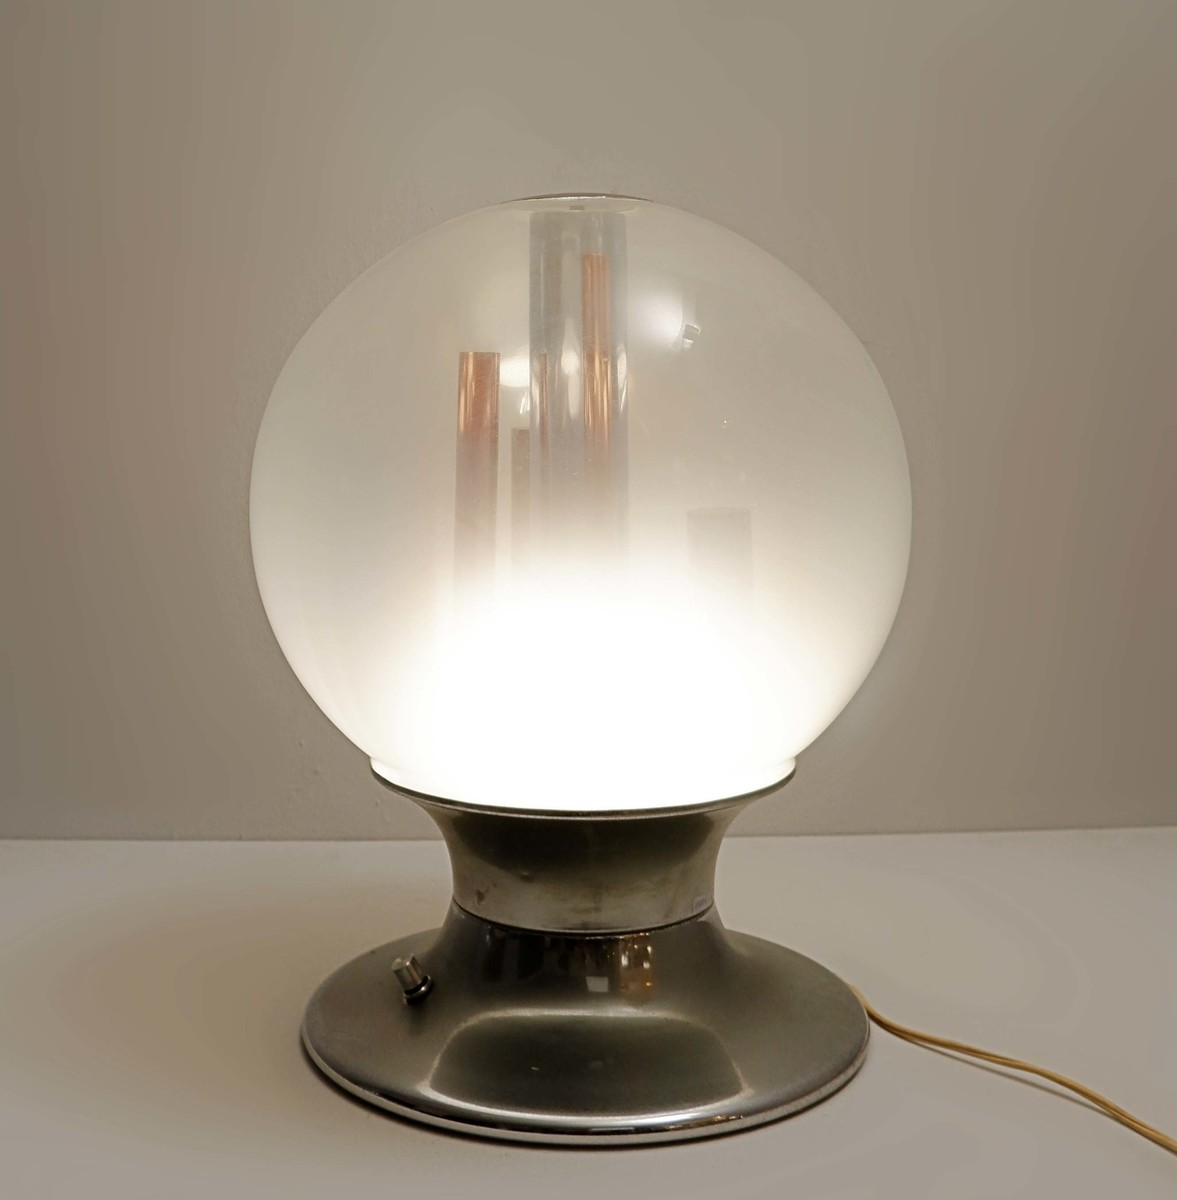 Murano Glass Globe And Copper Table By Angelo Brotto Table Lamp 1960s Via Antica Recent Added Items European Antiques Decorative